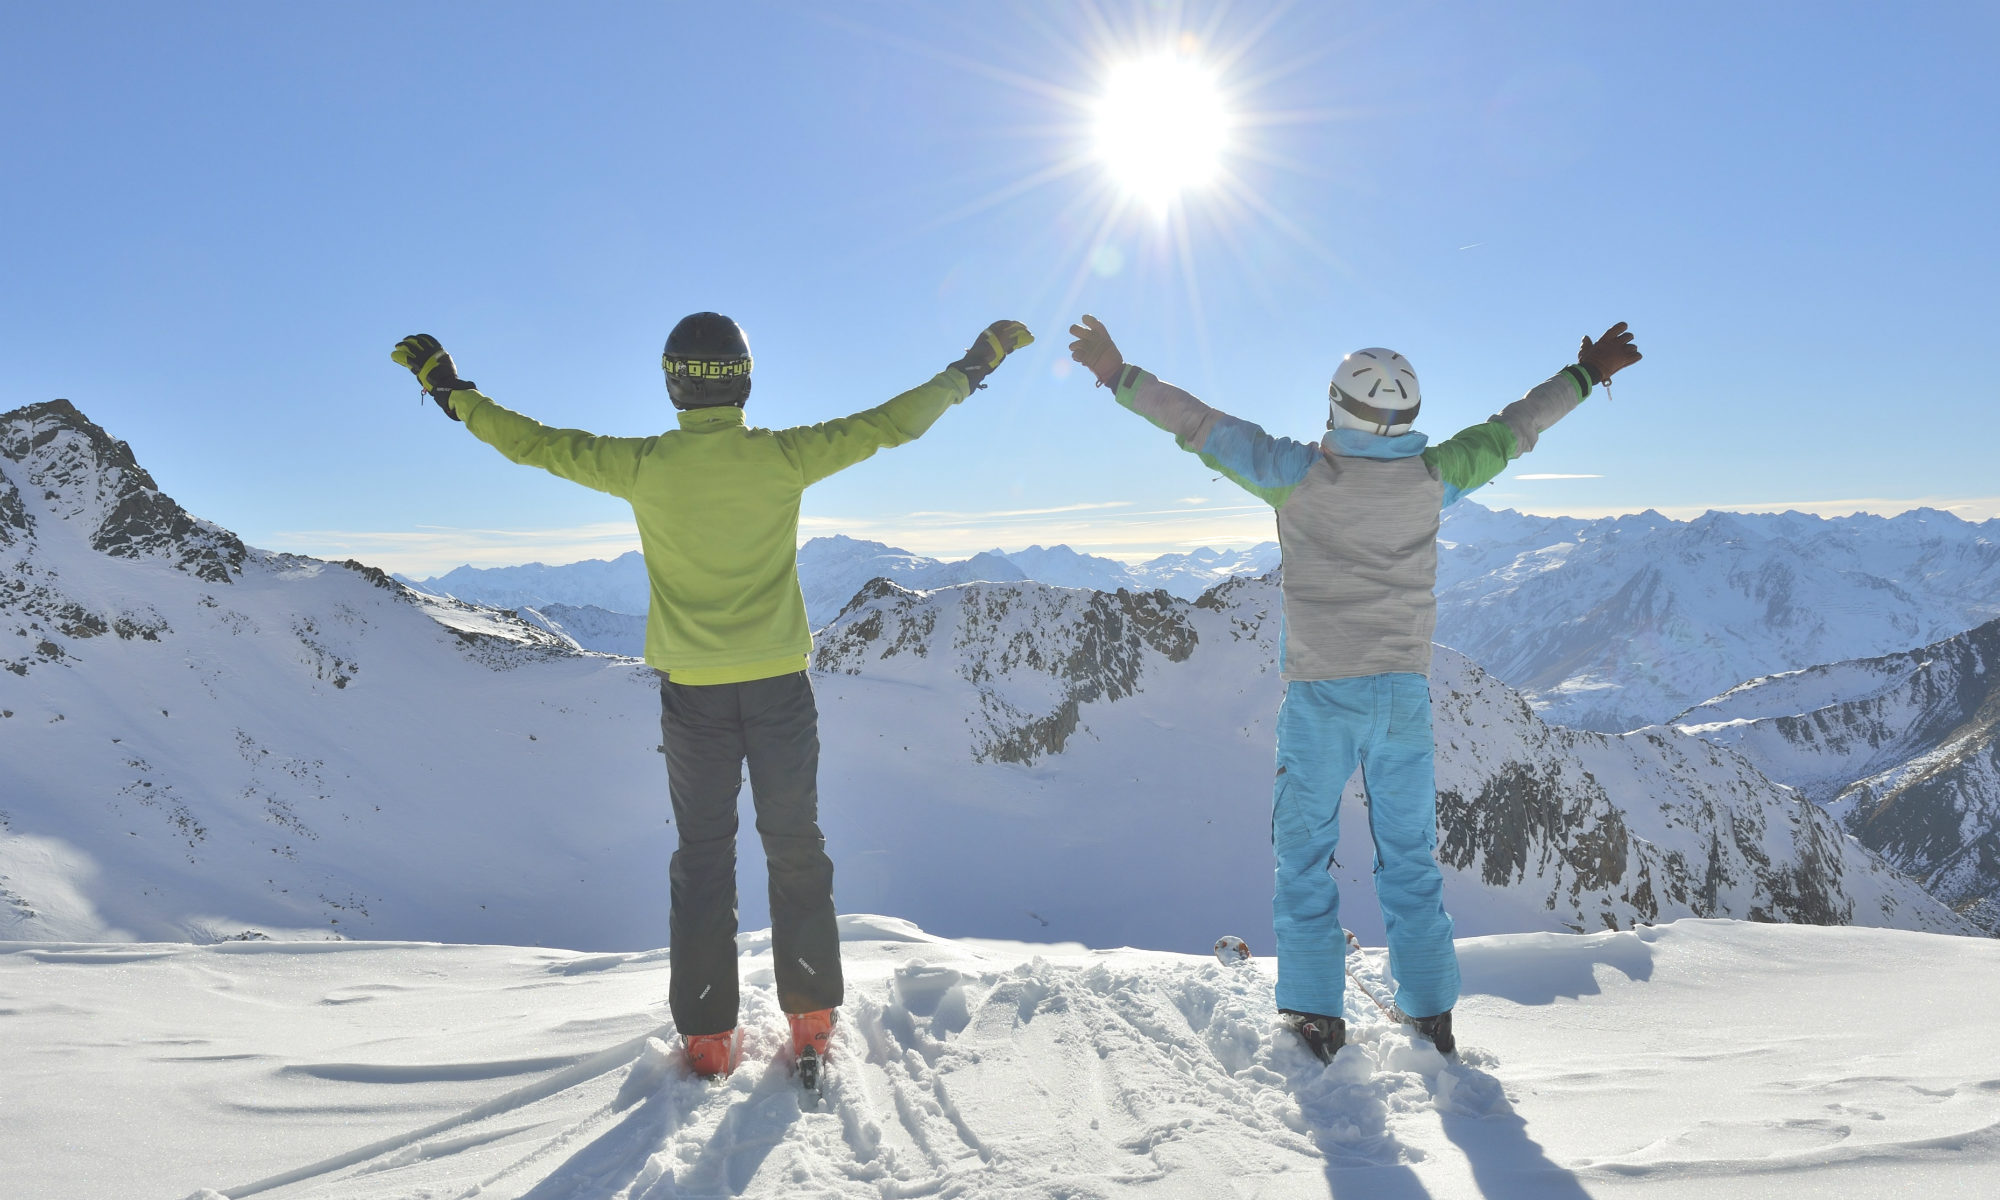 Two skiers view the snowy landscape around them from a sunny peak.